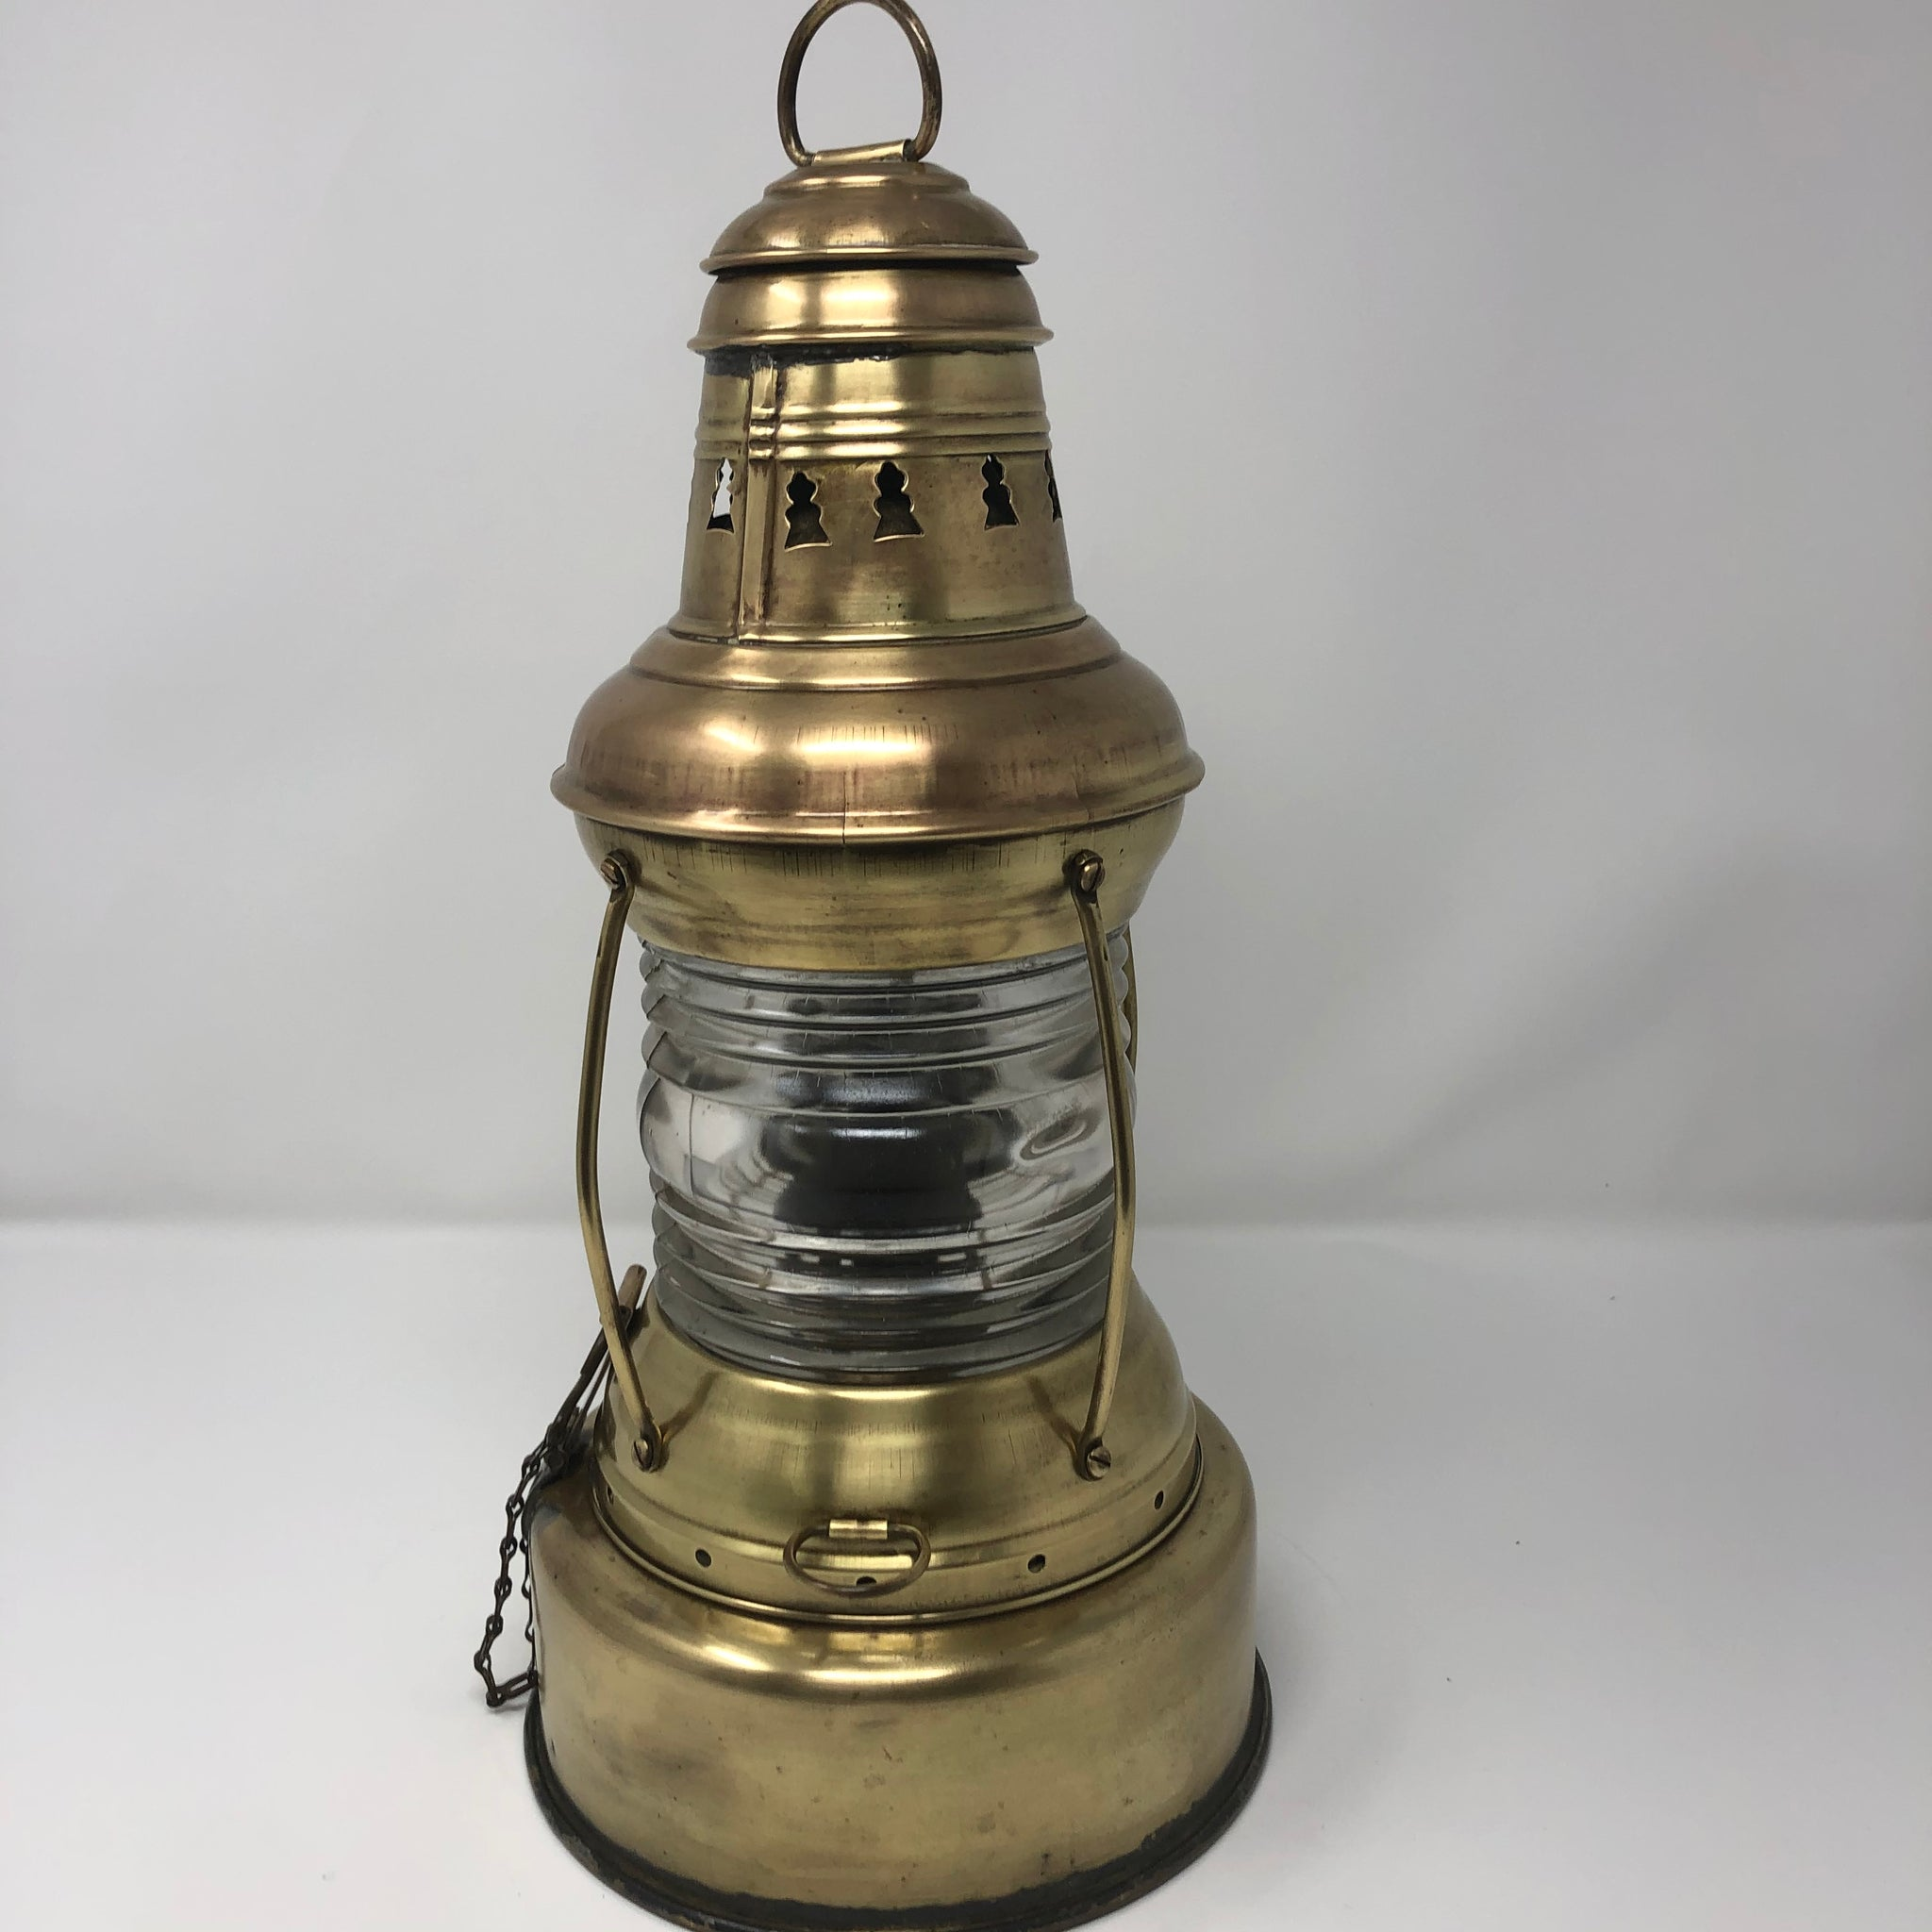 Navigation Light, Perko, 360 Degree White Light, circa early 1920's - Annapolis Maritime Antiques